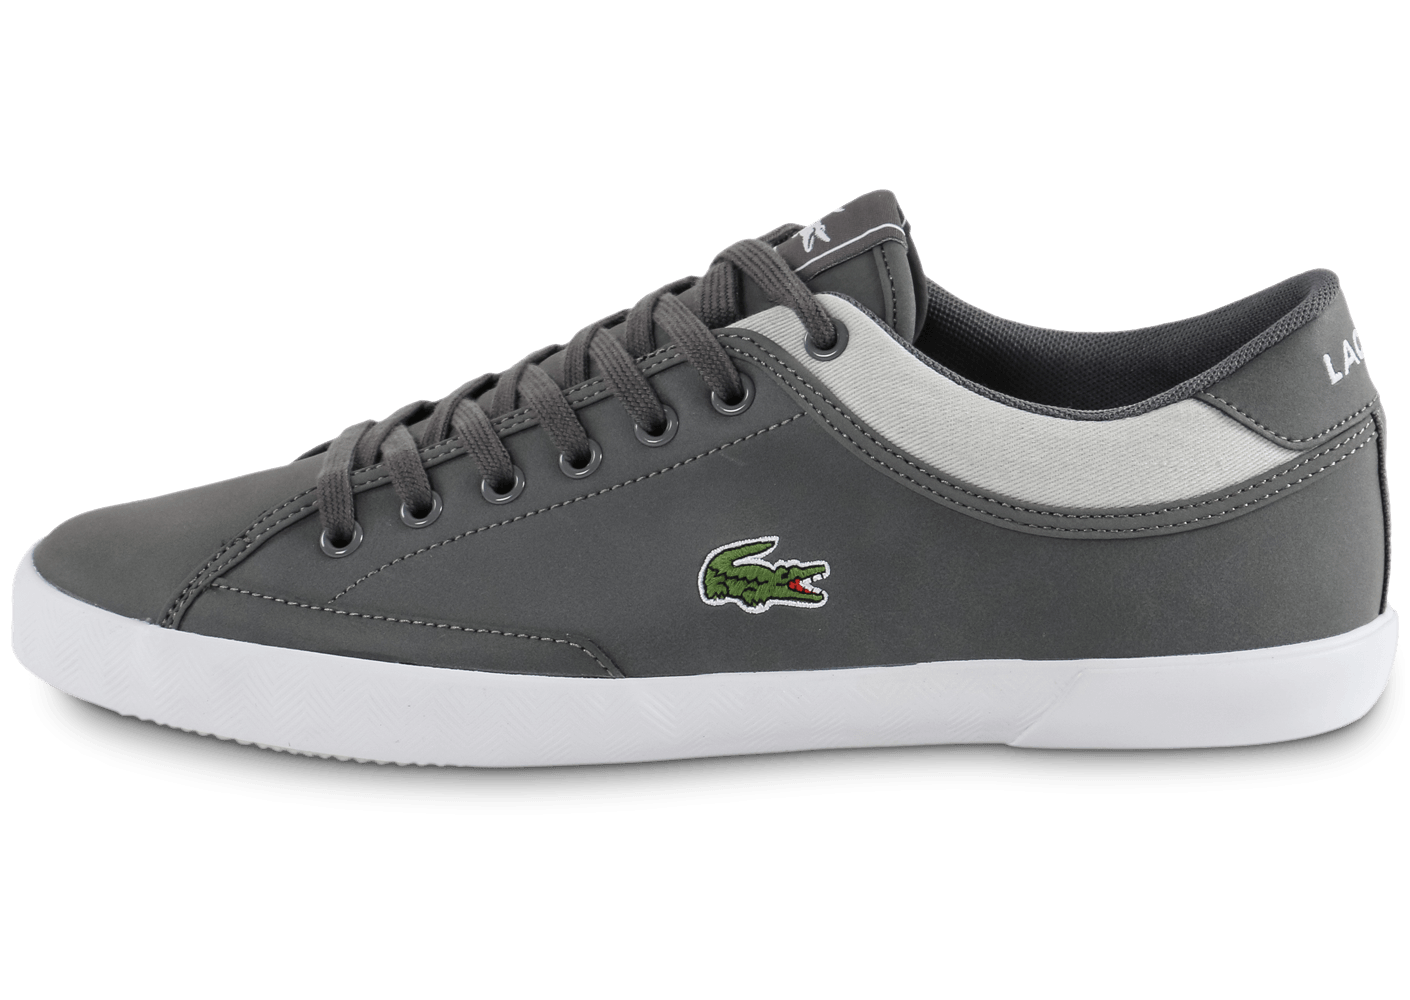 Baskets Chaussures Lacoste Angha Chausport grise homme w6t6qZUWYn